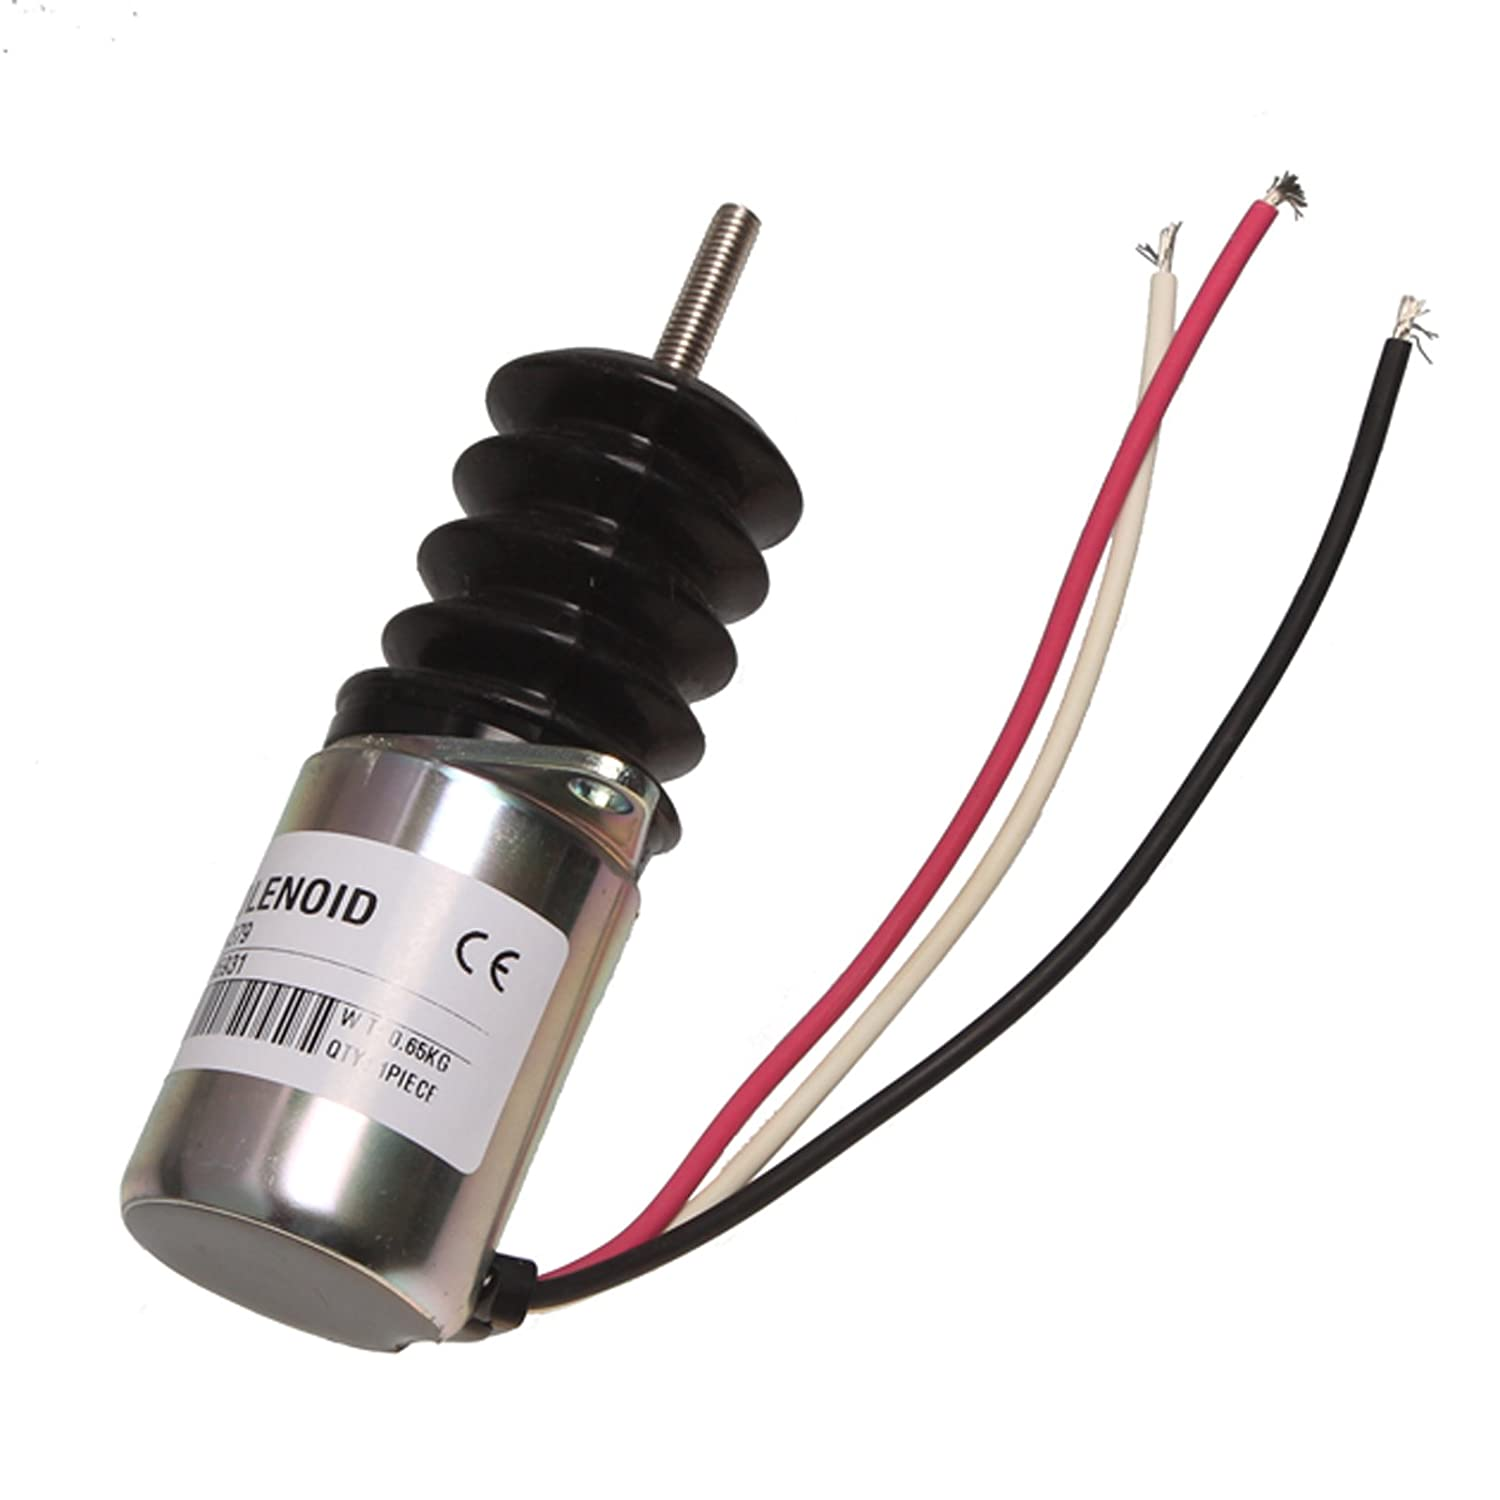 Friday Part AM103337 Fuel Shut off solenoid for John Deere 332 430 Lawn & garden Tractors